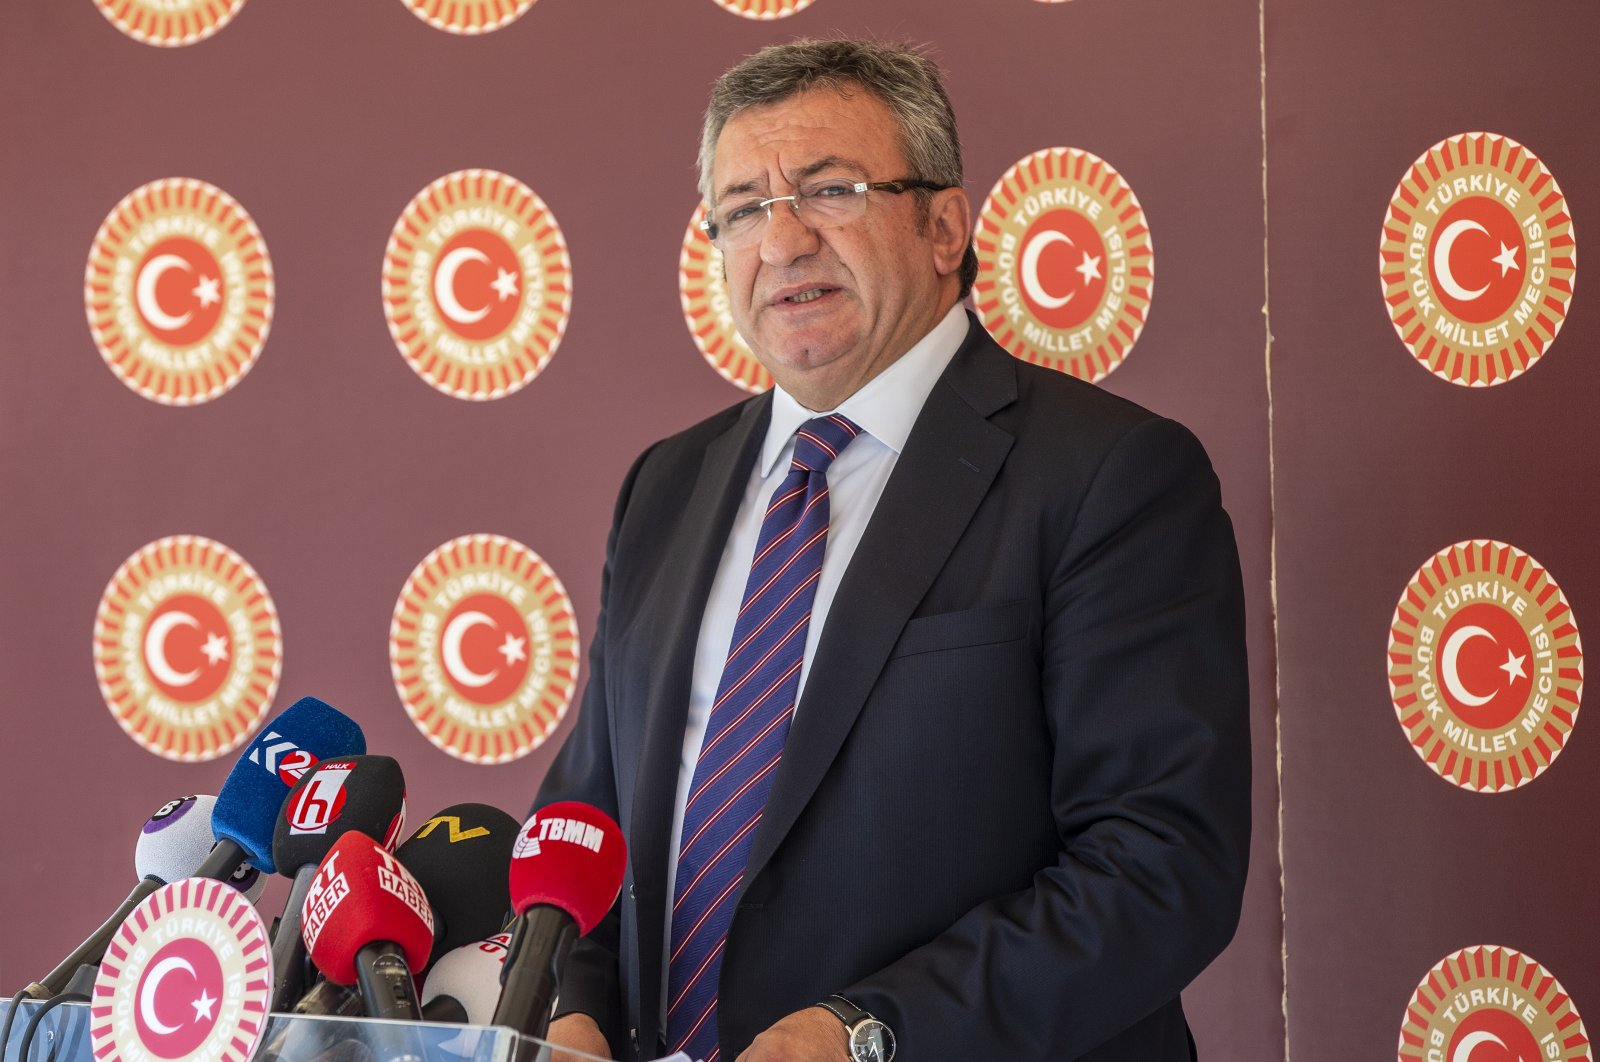 Republican People's Party (CHP) group deputy chairman Engin Altay during a press conference at Parliament in Ankara, Turkey, July 15, 2020. (AA Photo)